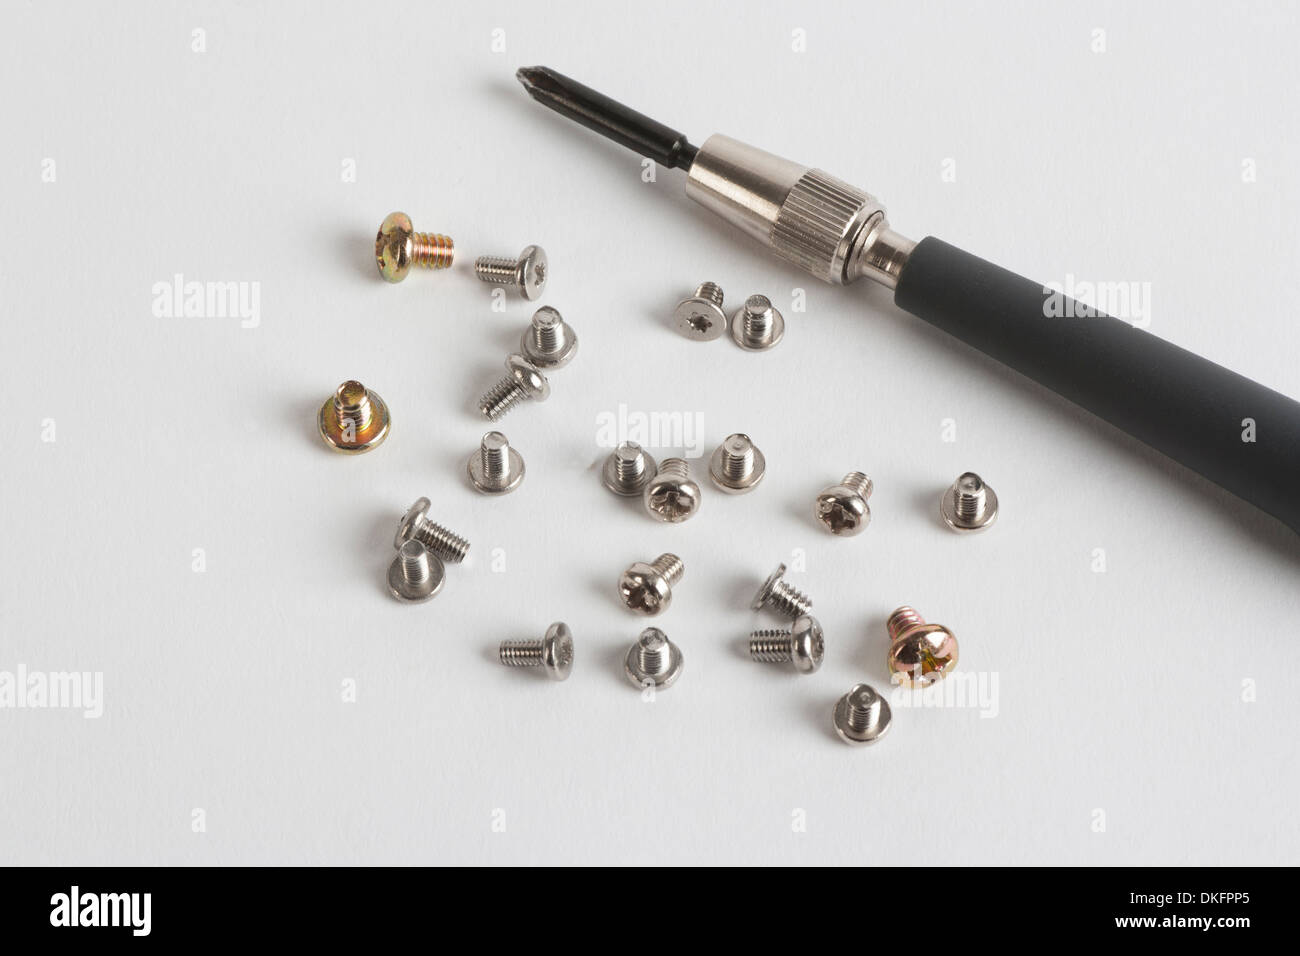 Feinmechanik stockfoto bild: 63656717 alamy